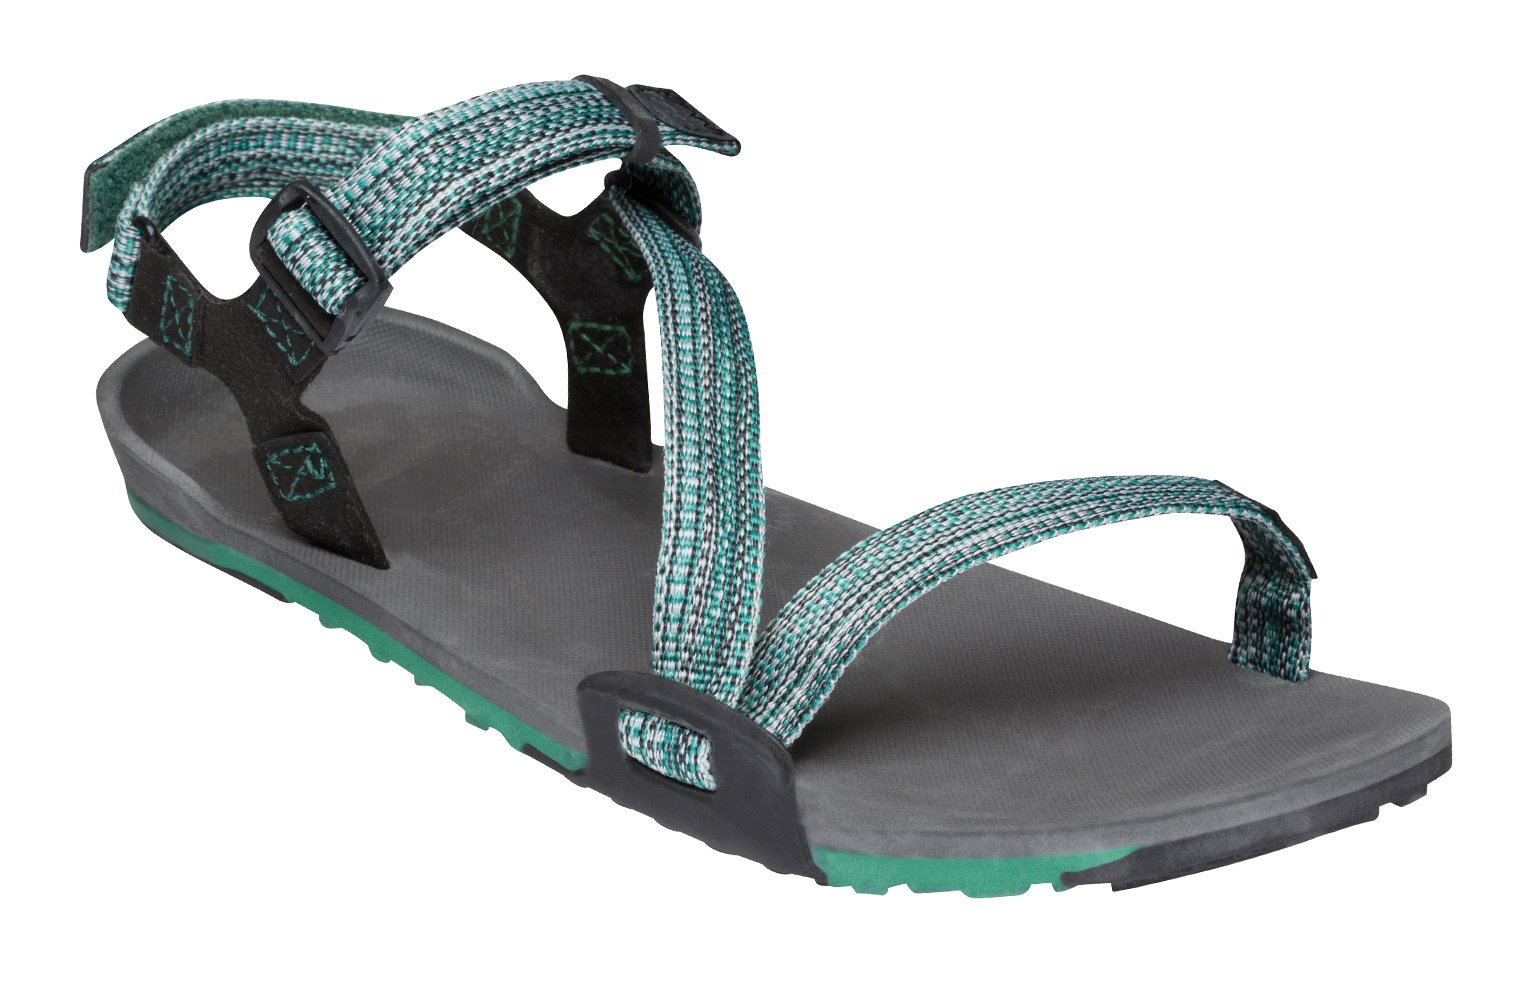 2bc1037ace8f Xero Shoes Z-Trail - Women s Lightweight Hiking and Running Sandal -  Barefoot-Inspired Minimalist Trail Sport Sandals - Multi-Green